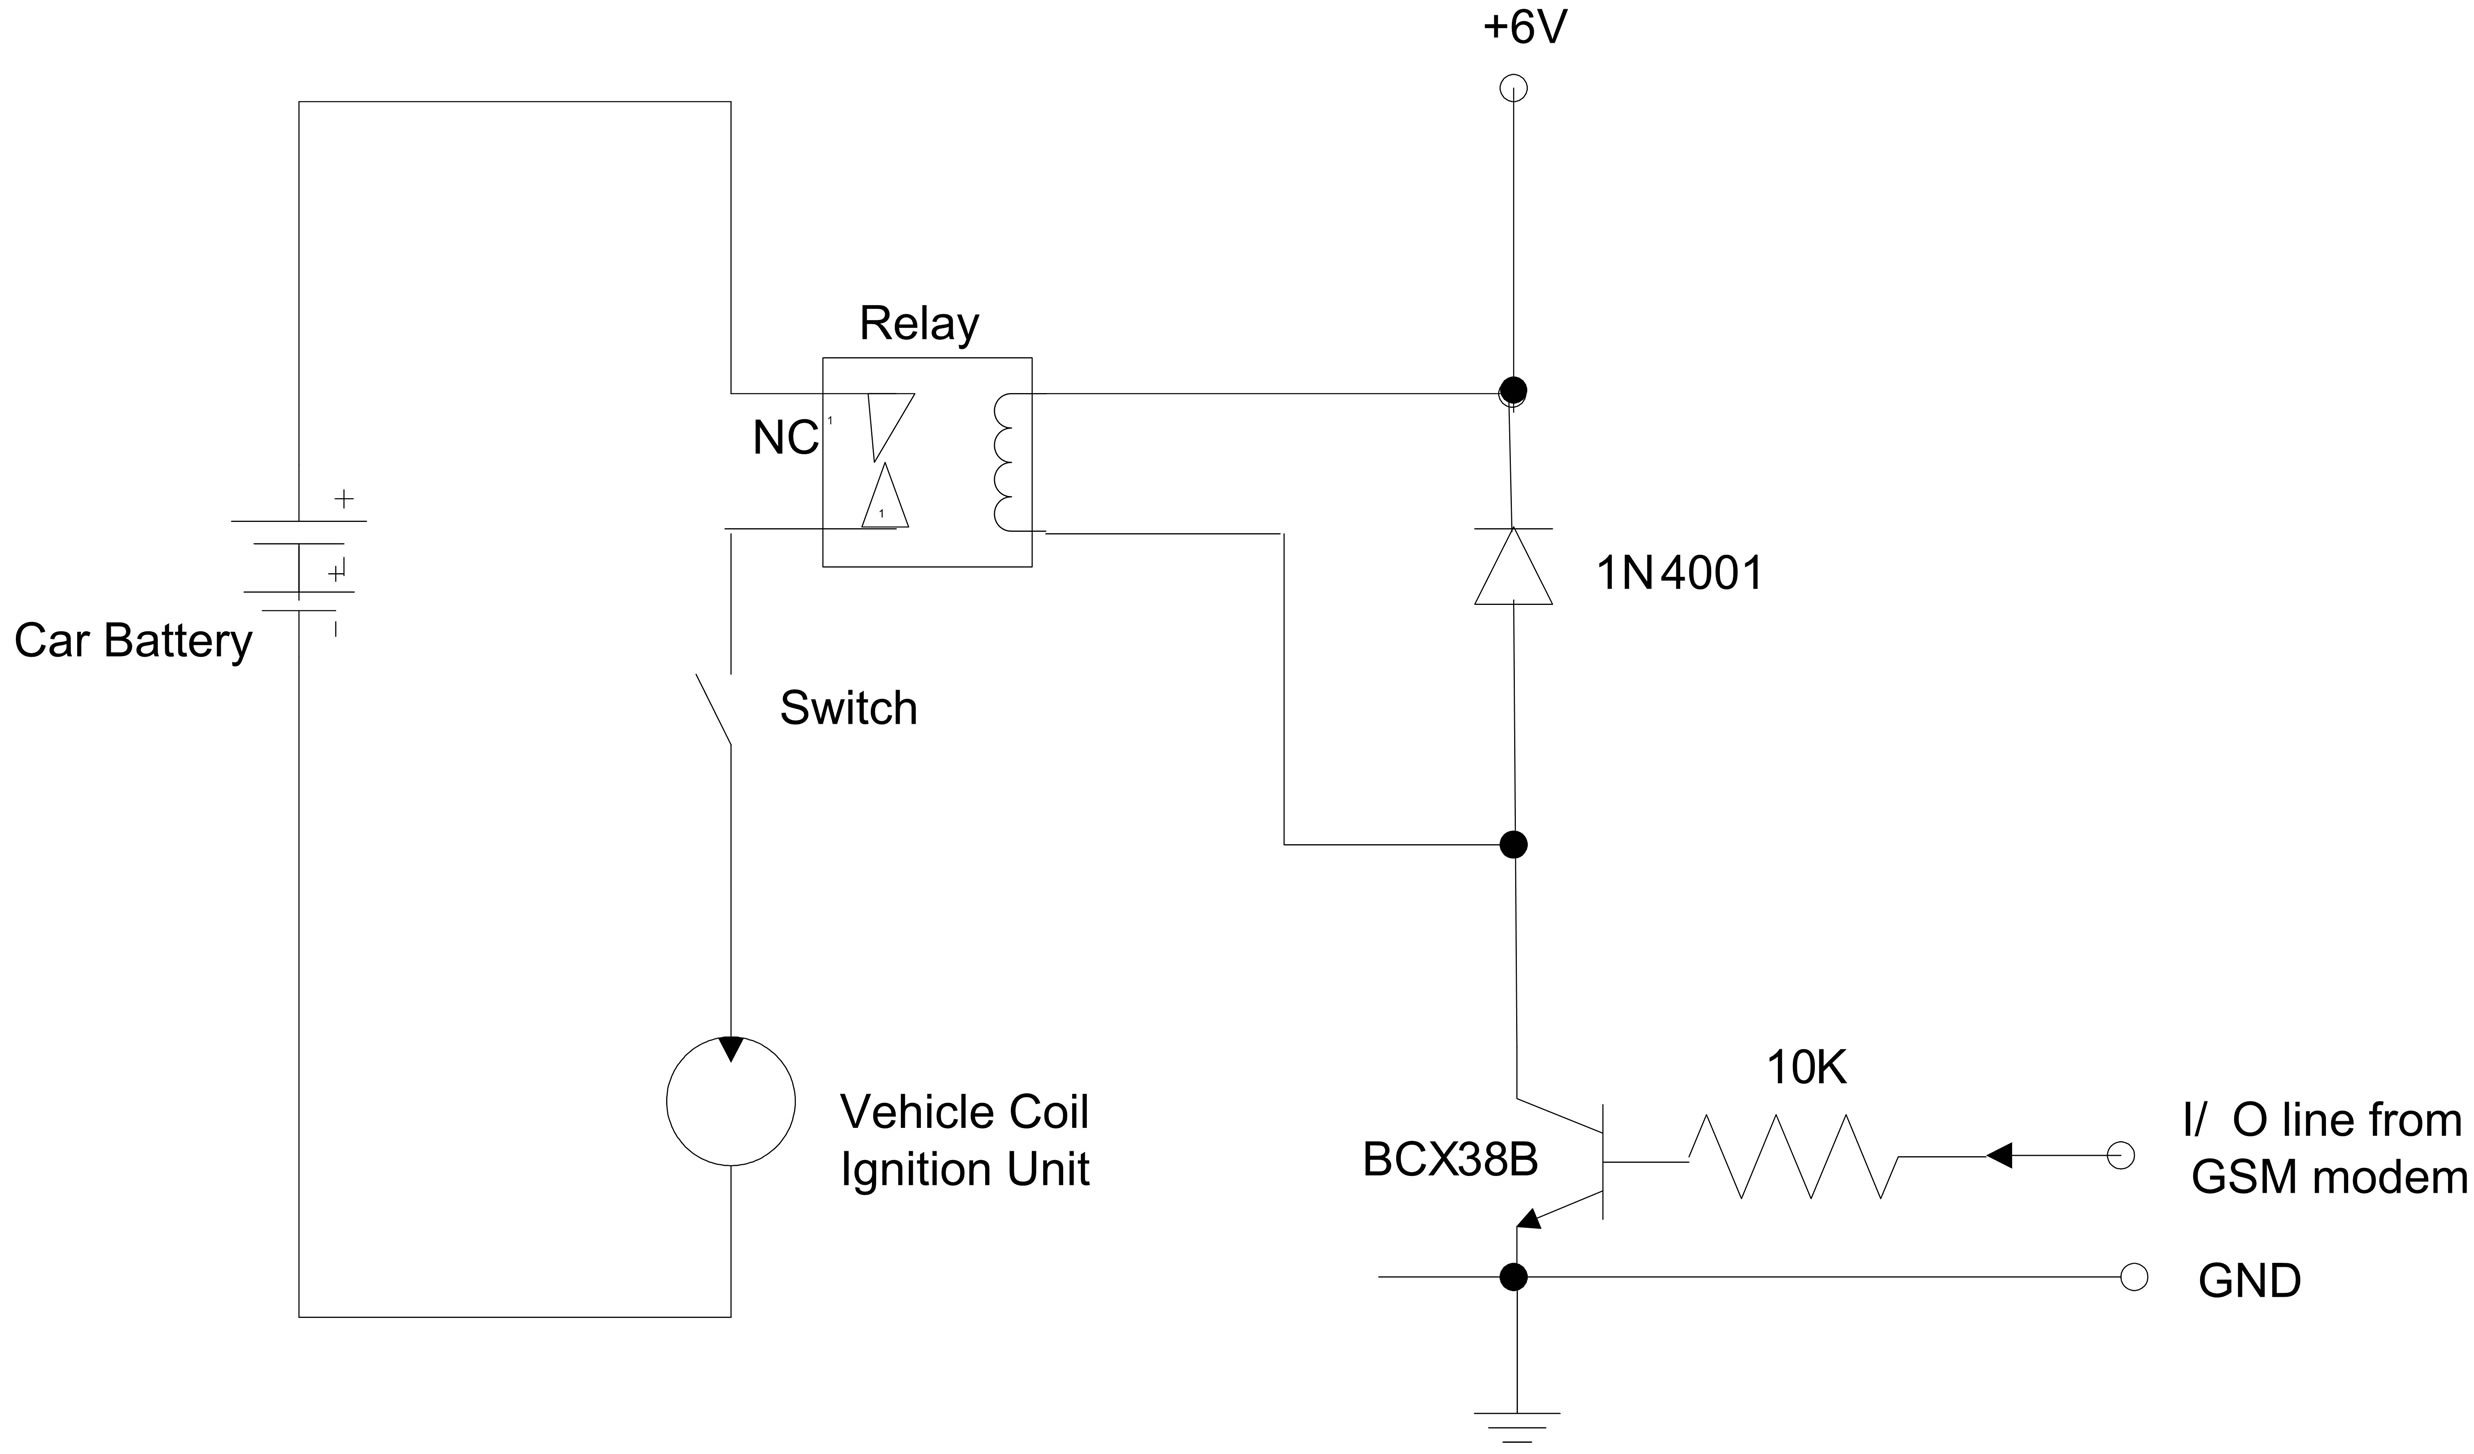 Design And Implementation Of Remotely Controlled Vehicle Anti Theft Two Hijack Alarms By 4001 Figure 4 Demobilizer Interfacing Circuit